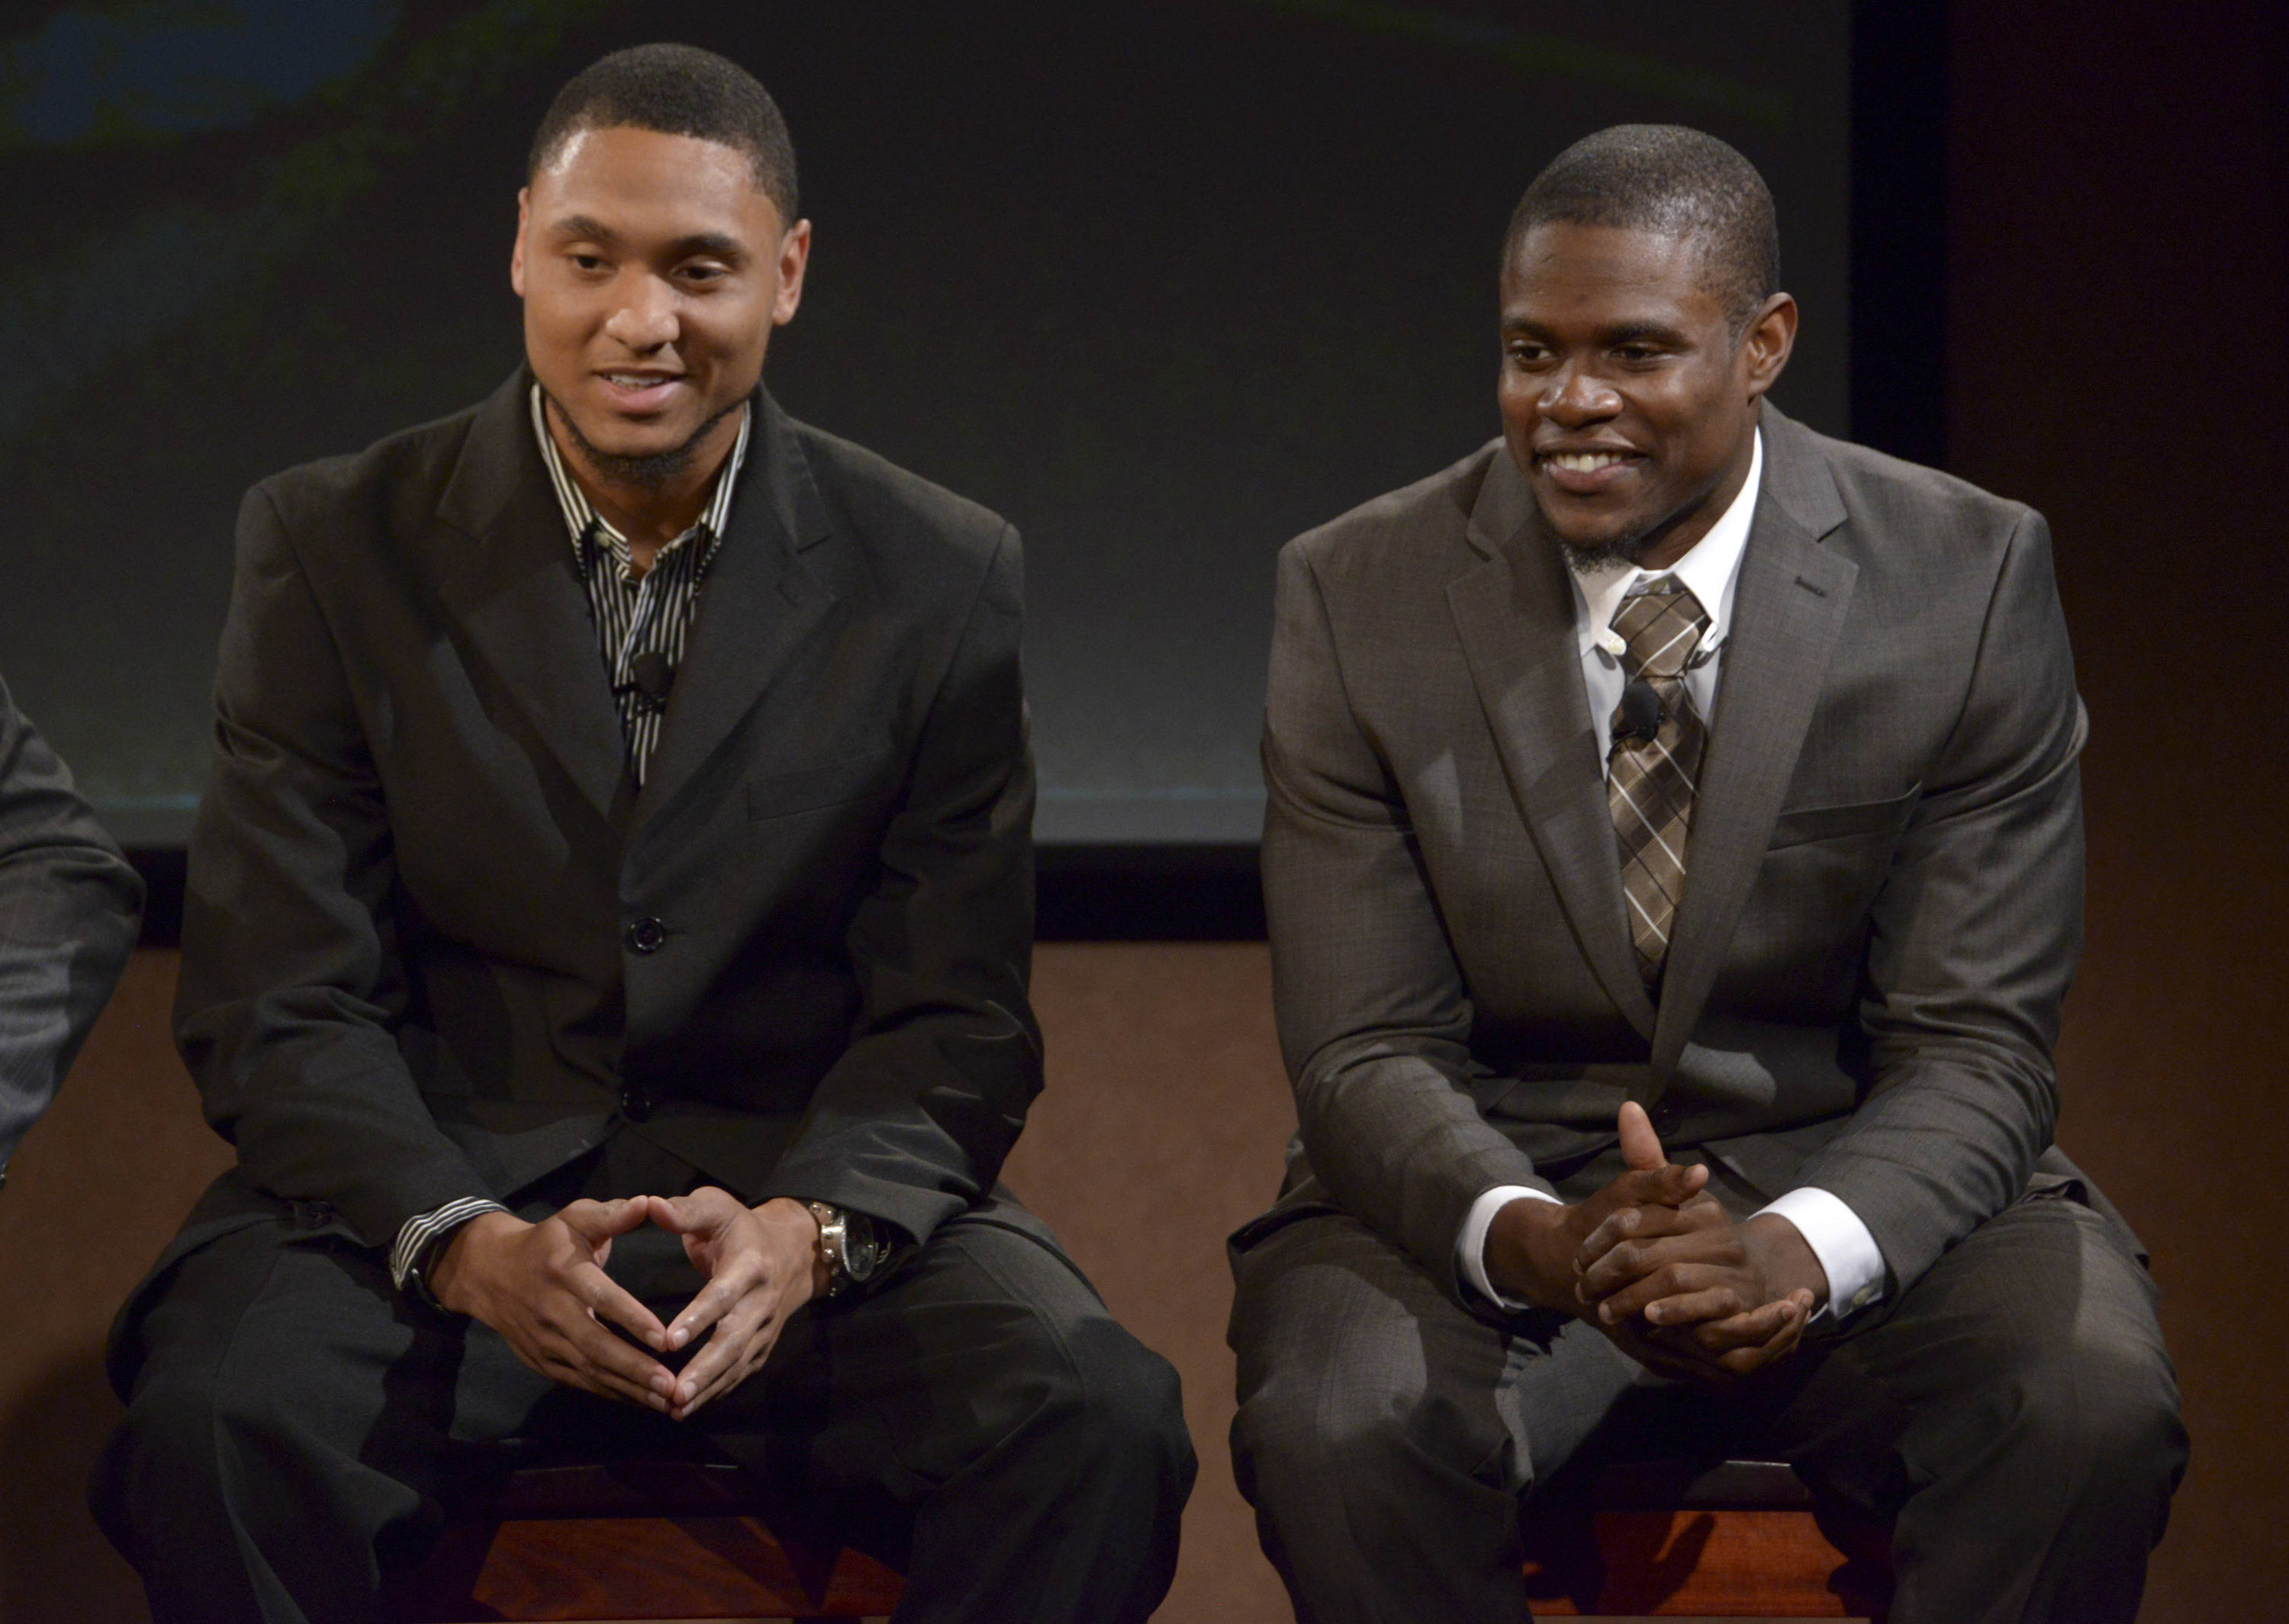 Florida State Seminoles receiver Rashad Greene (left) and defensive back Lamarcus Joyner at a press conference for the 2014 BCS National Championship at ESPN Zone Downtown Disney. Mandatory Credit: Kirby Lee-USA TODAY Sports